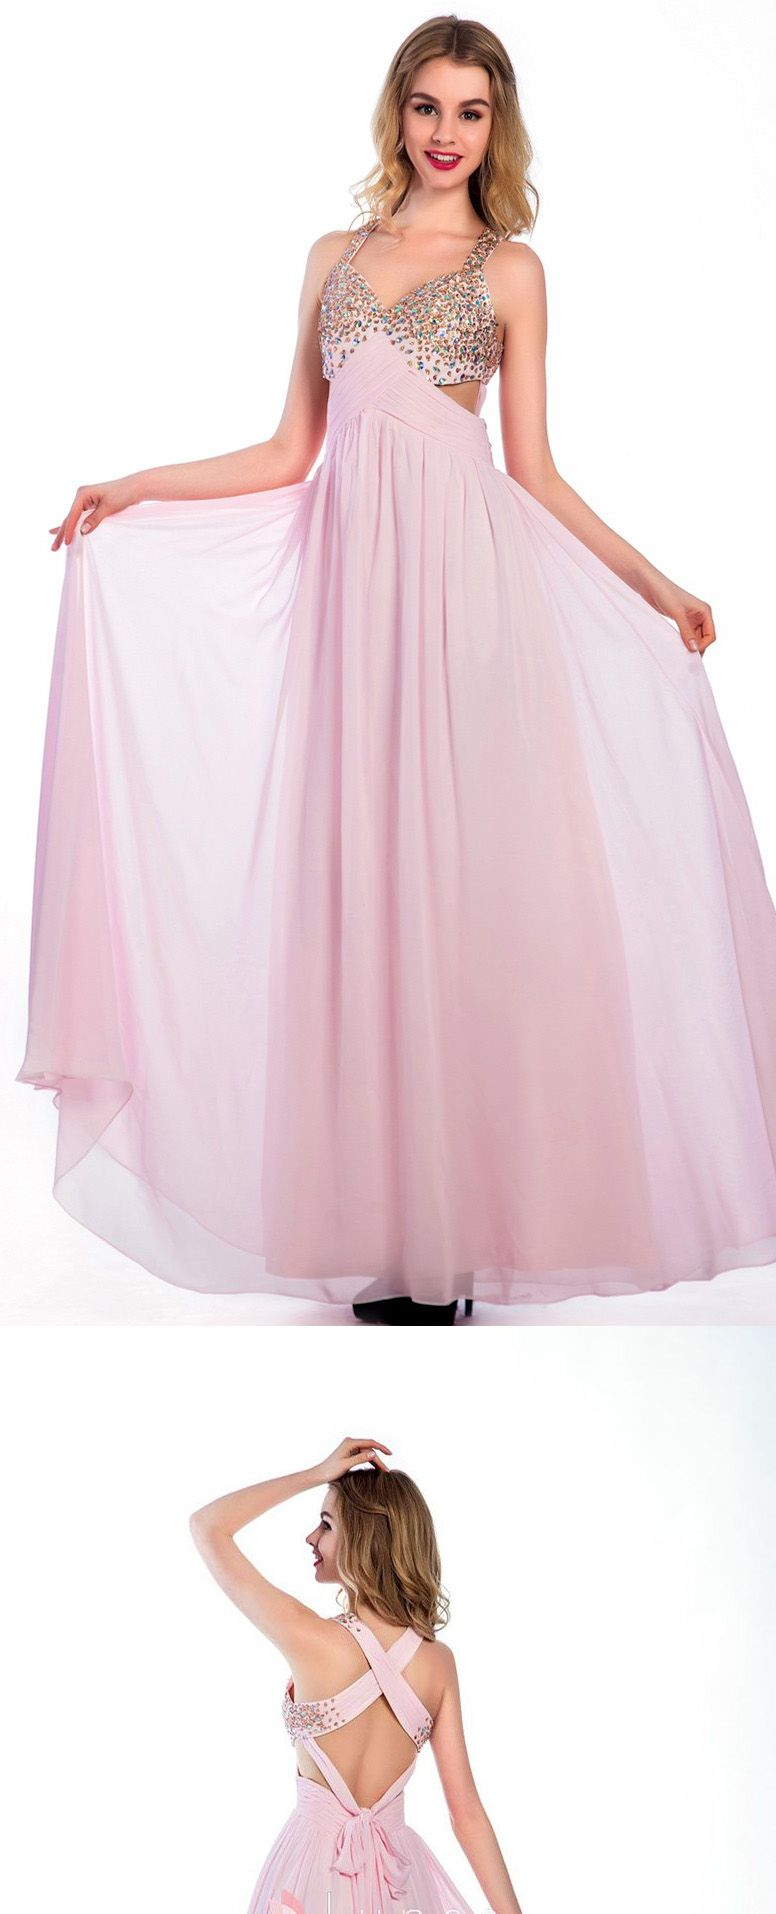 Floorlength pink chiffon vneck prom dresses homecoming dress ed